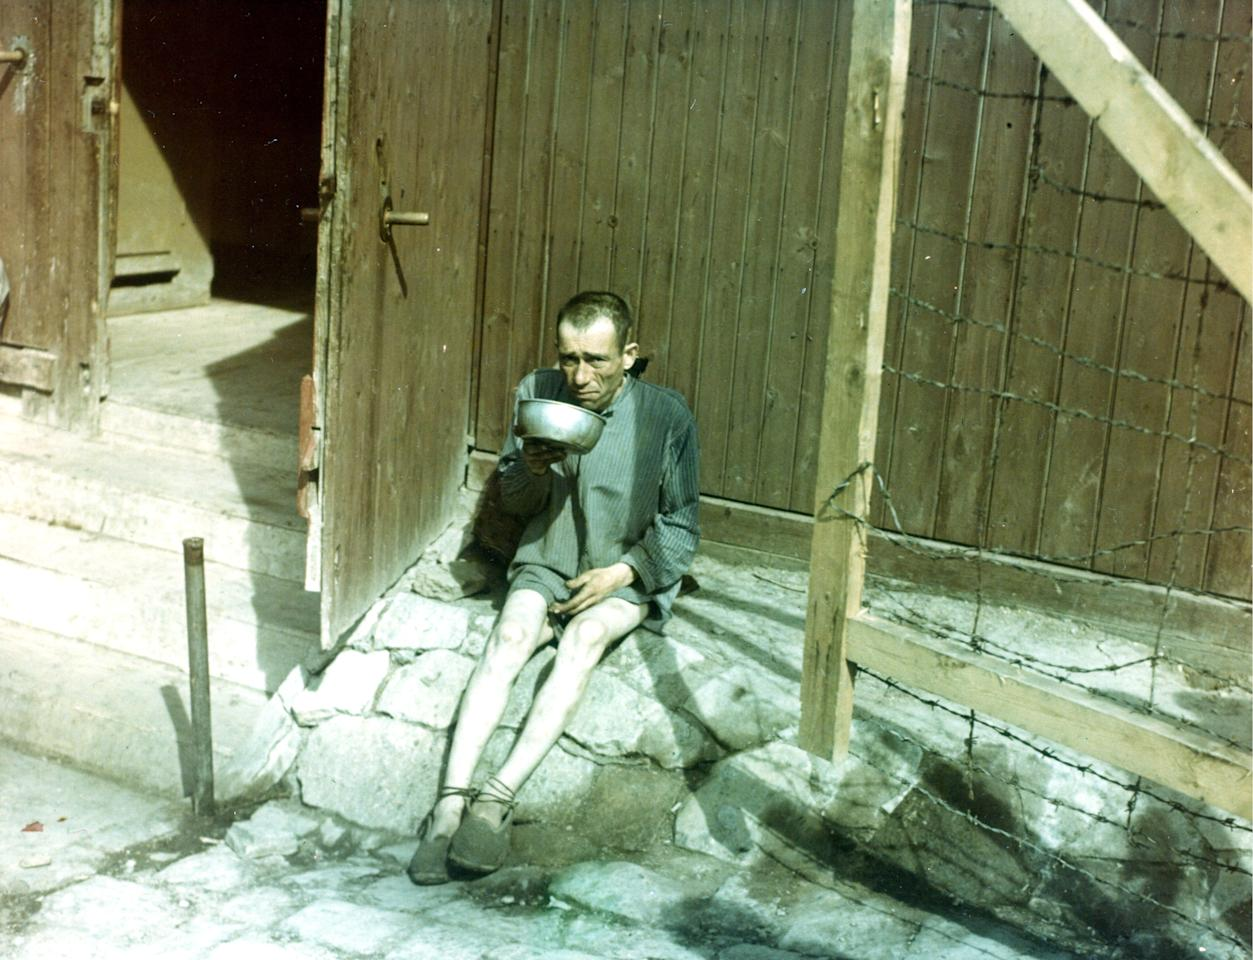 An emaciated former prisoner of the Buchenwald concentration camp drinks from a metal bowl shortly after the camp's liberation, Weimar, Germany, 1945. (Photo by PhotoQuest/Getty Images)